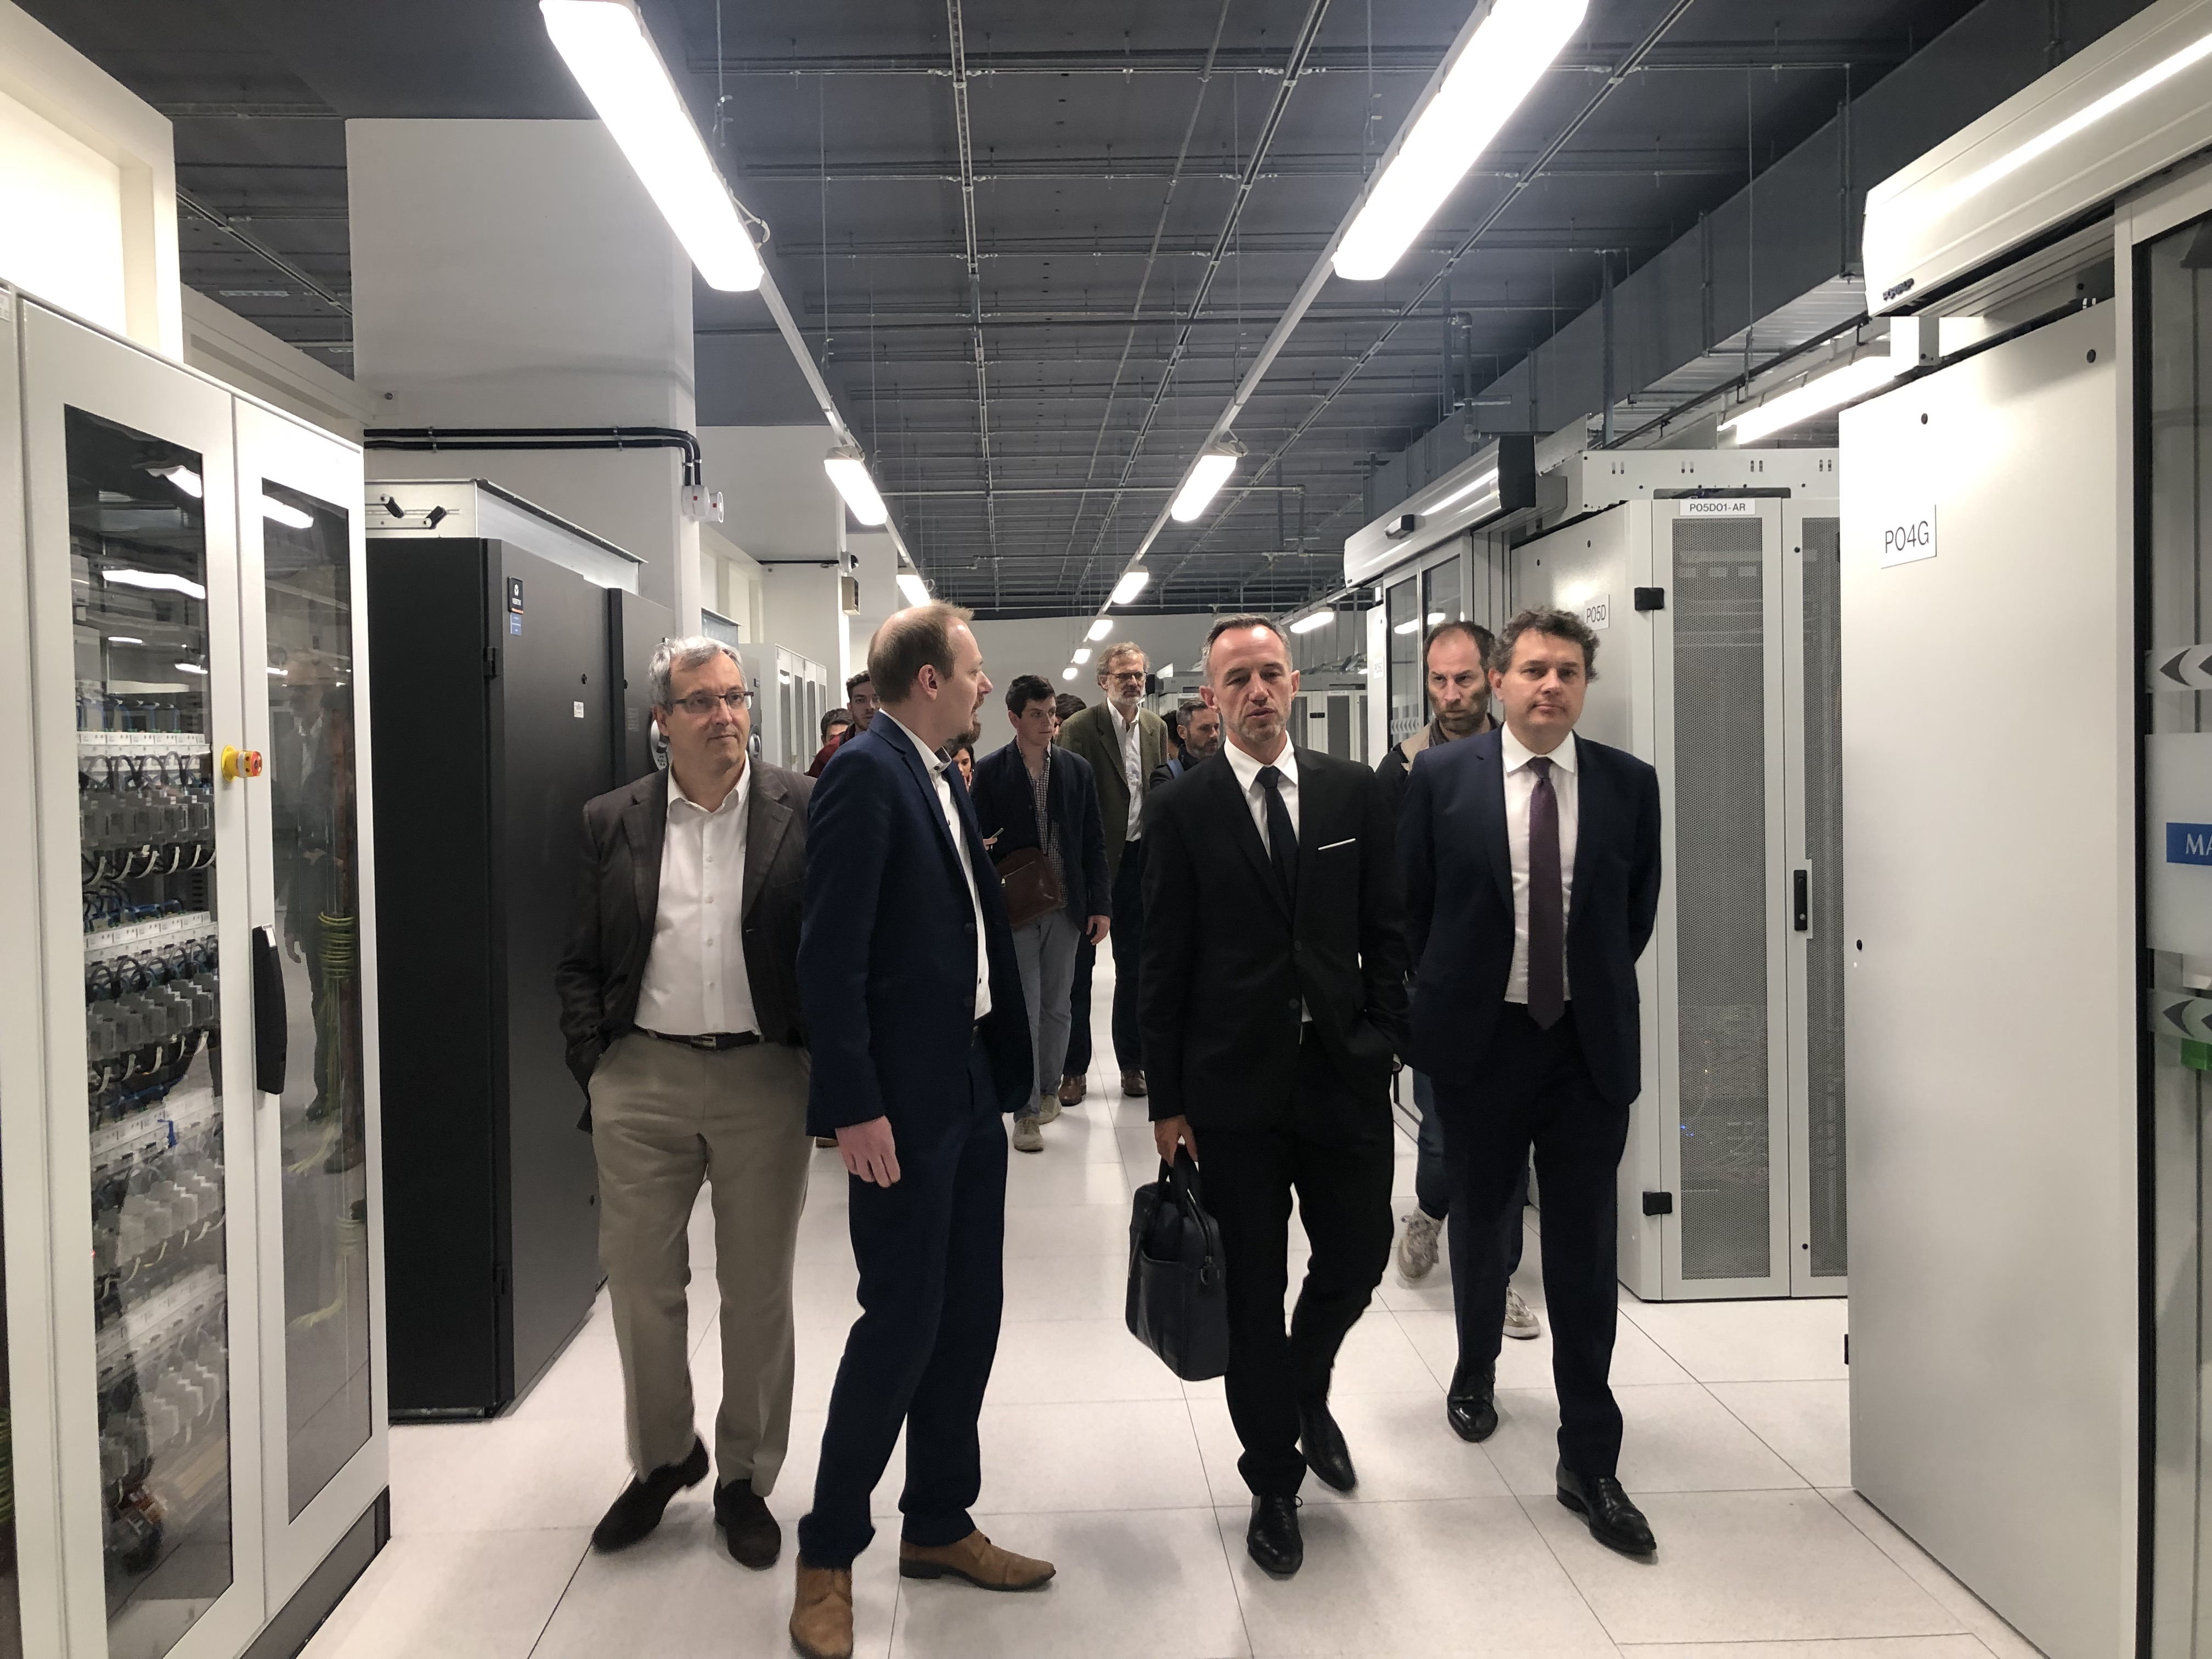 IMG 3882 - Paris opens a data center to control its digital infrastructure